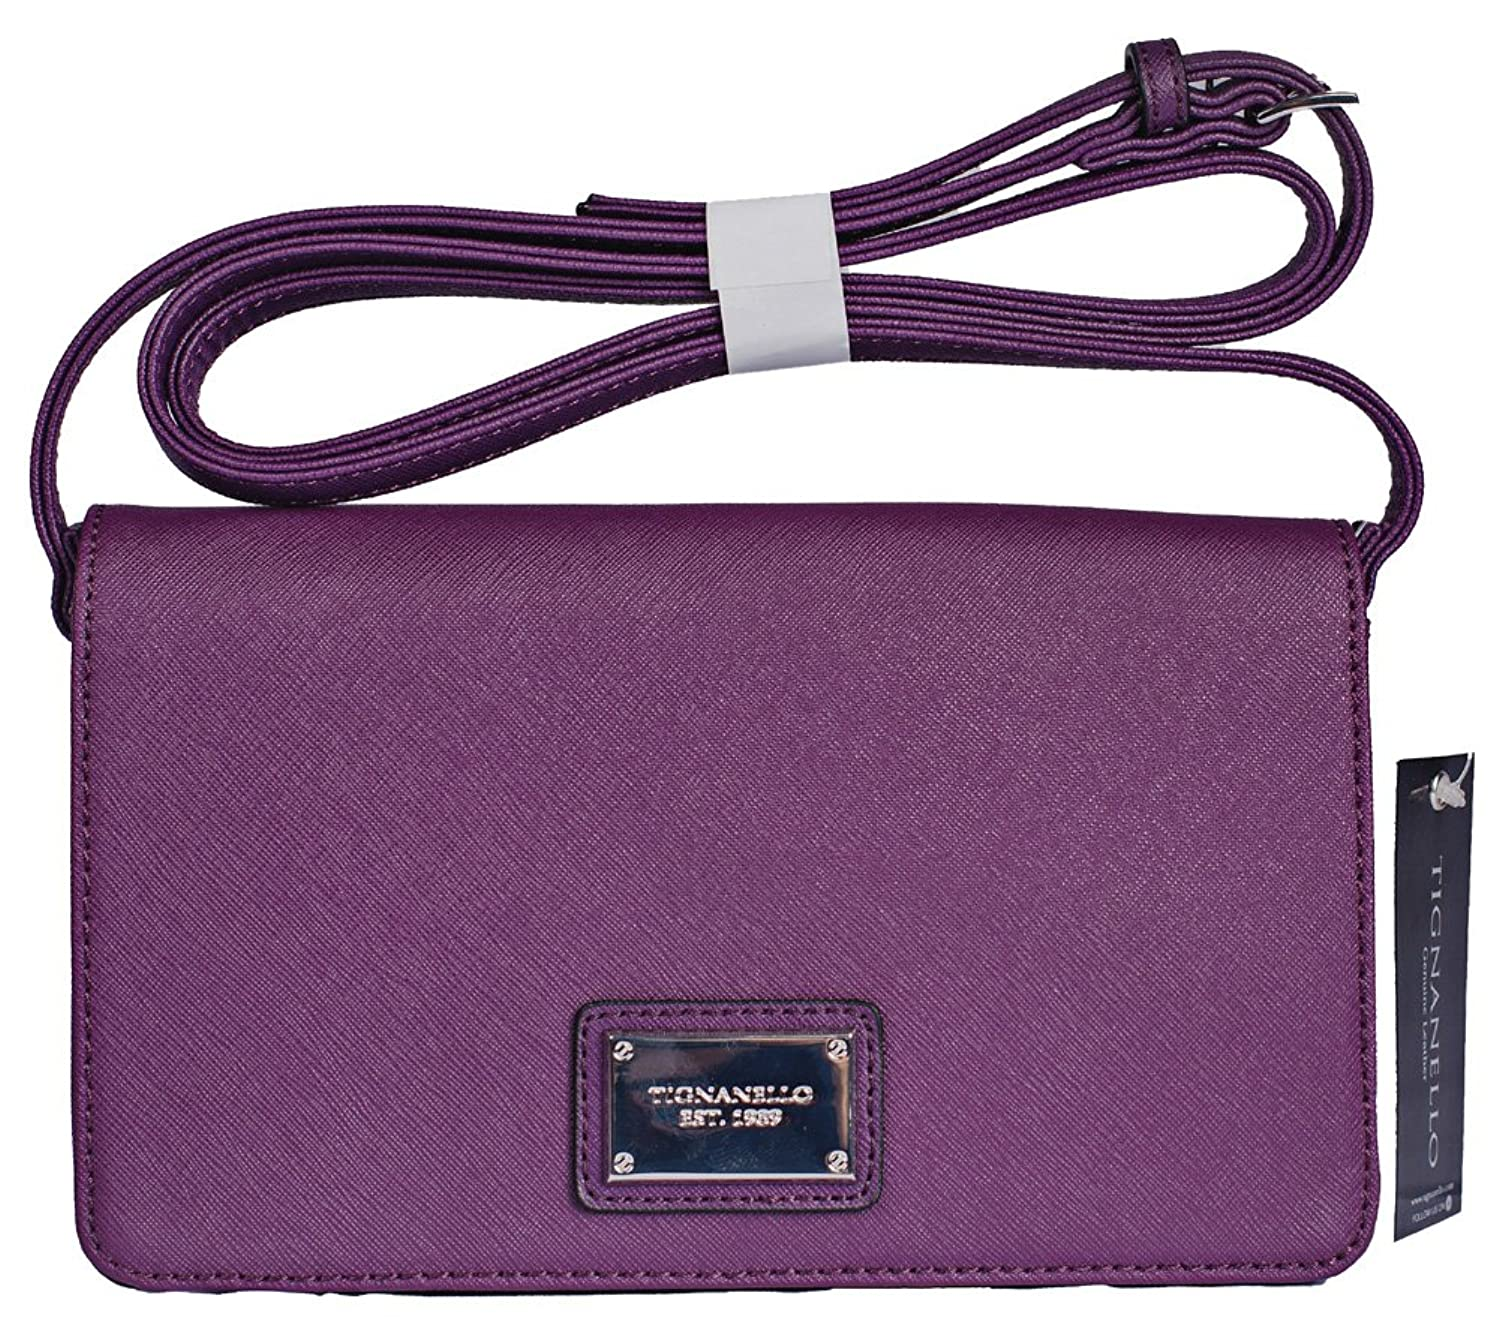 Tignanello Clean and Classic Clutch Eggplant A261901